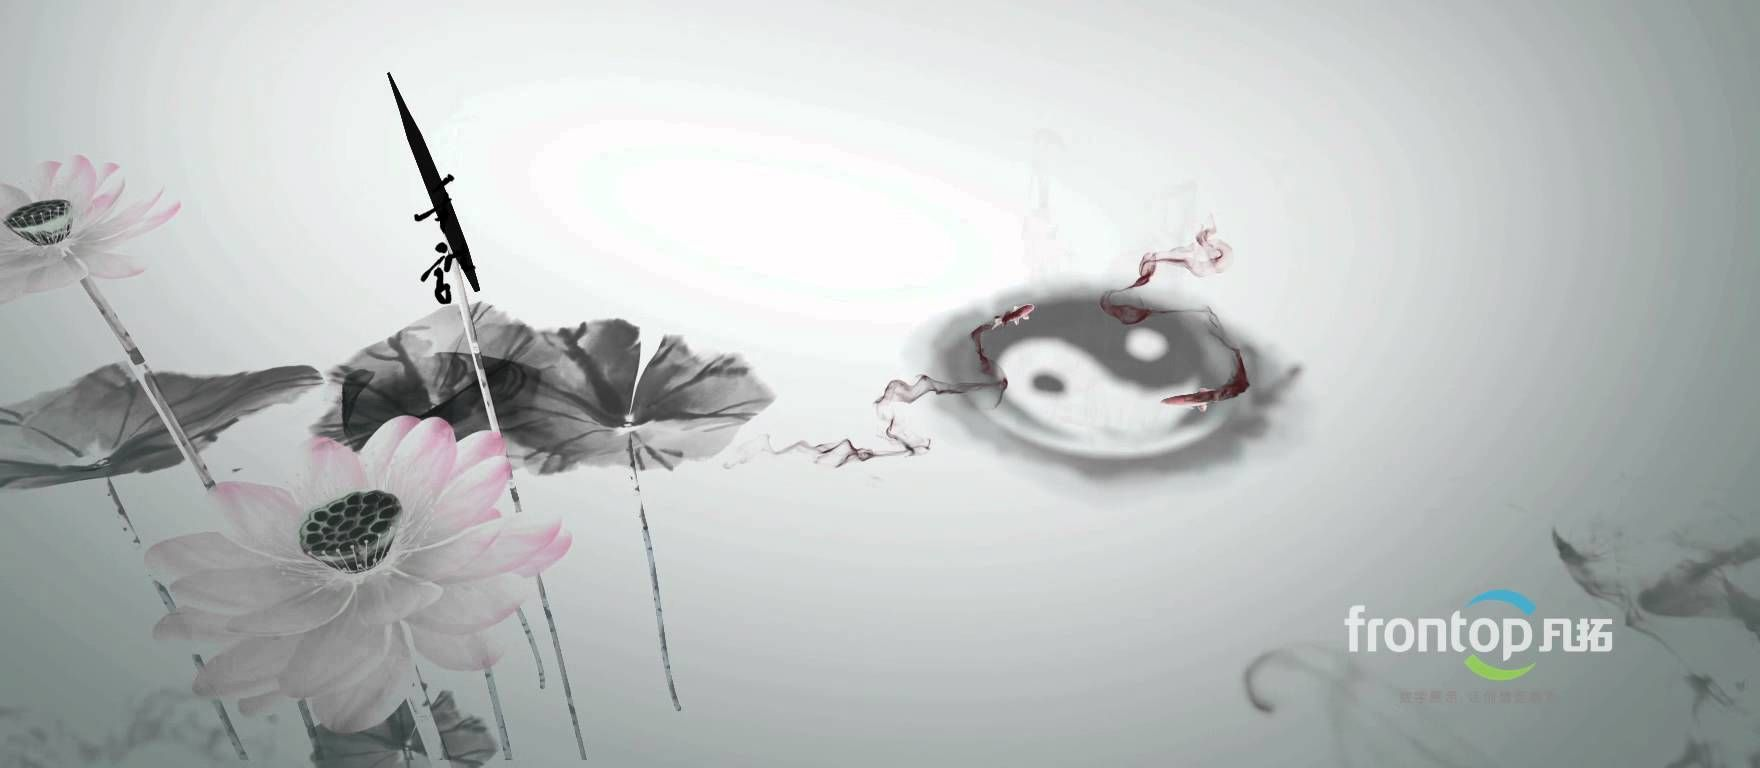 Ink Animation In Classical Chinese Style Chinese Ink Animation Ink